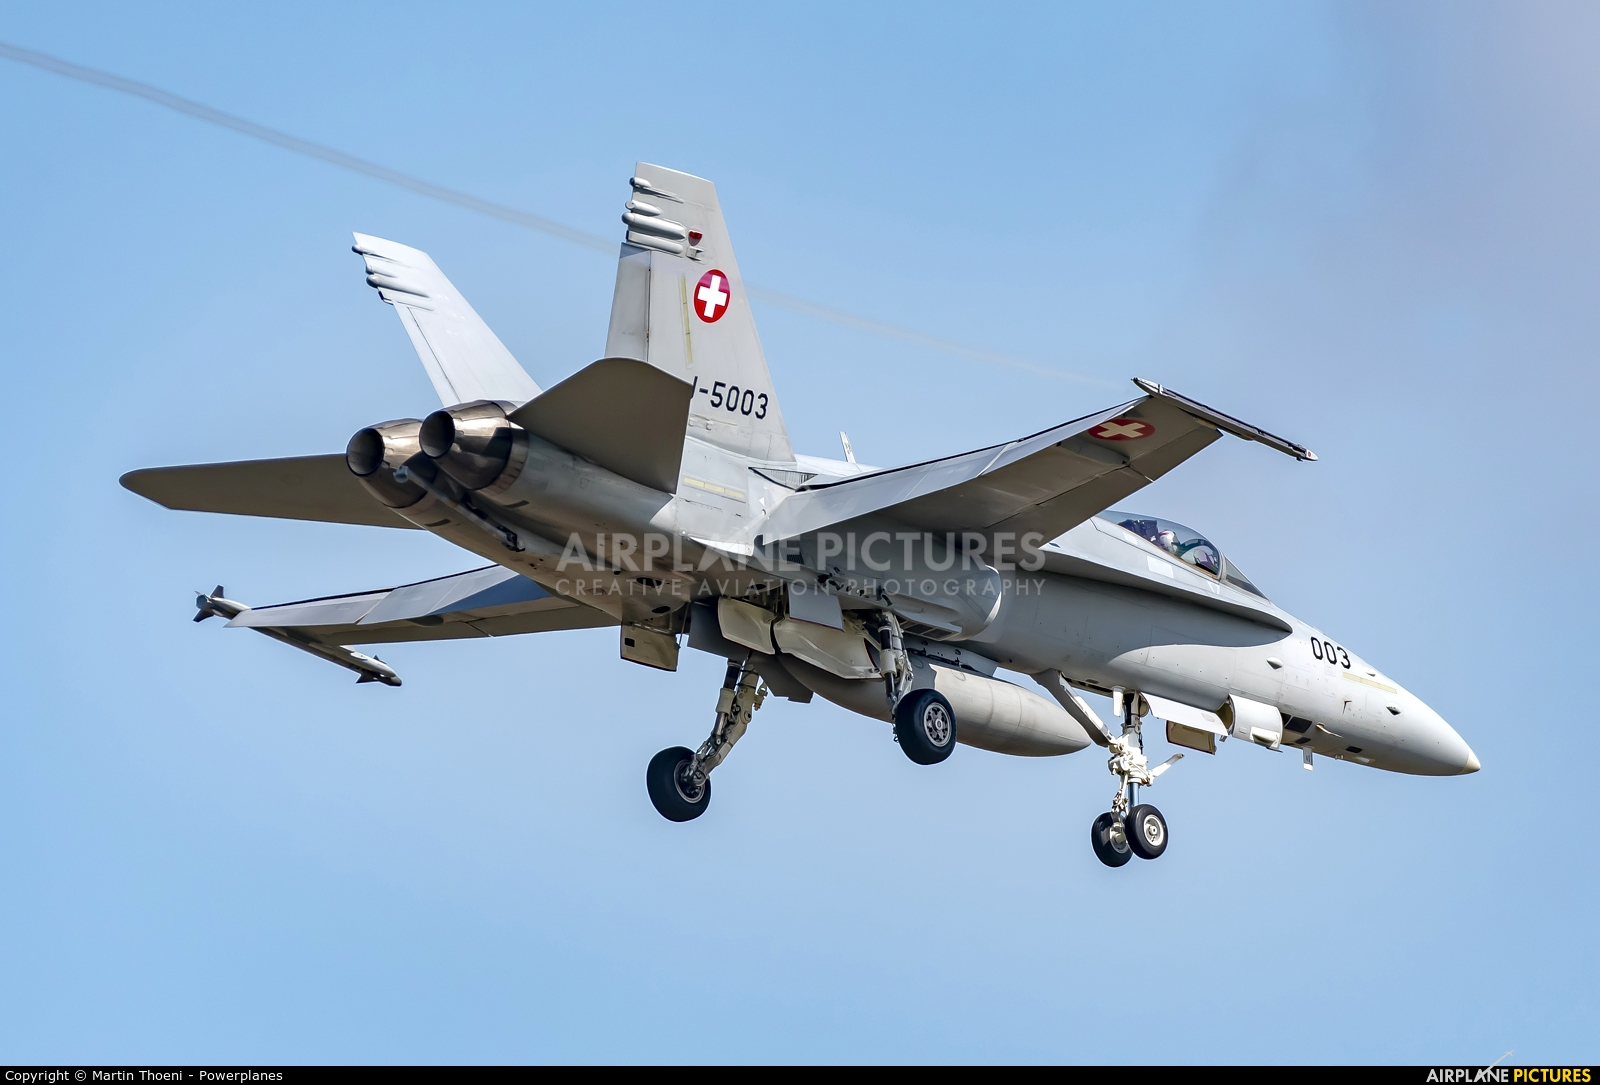 Switzerland - Air Force J-5003 aircraft at Payerne